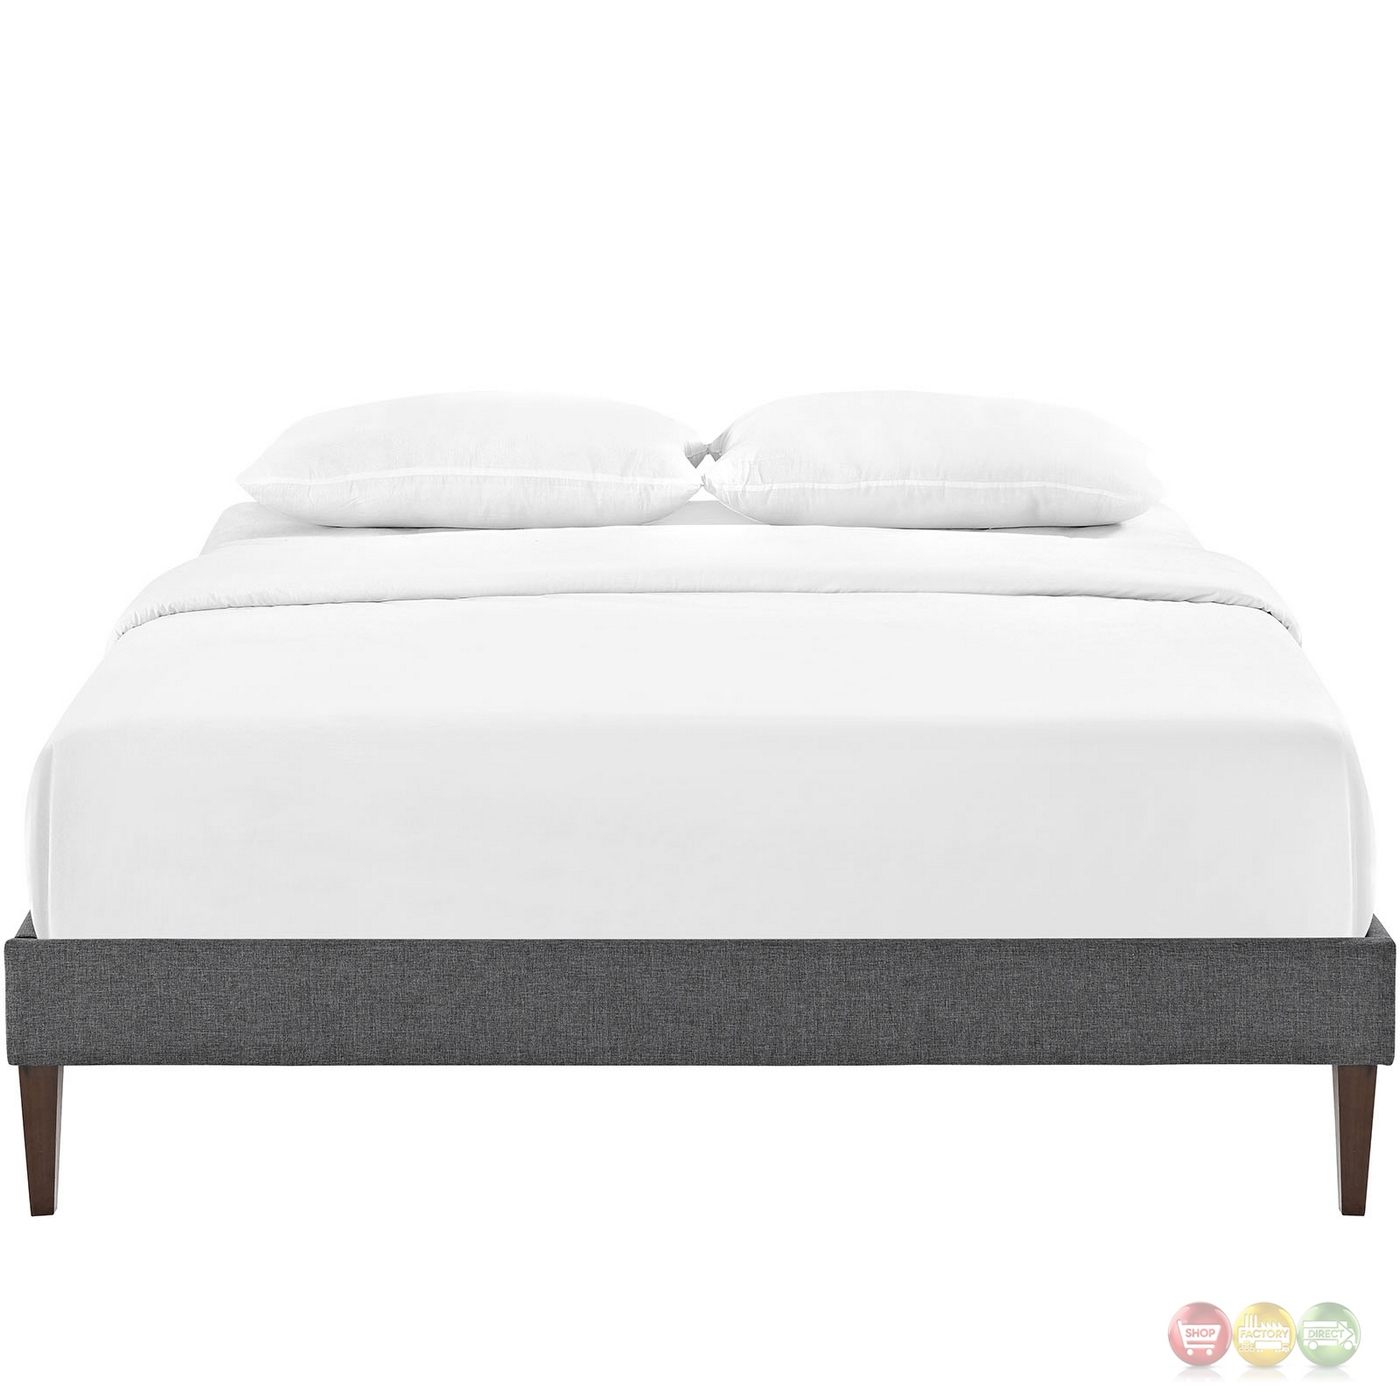 sharon modern queen fabric platform bed frame with square legs gray